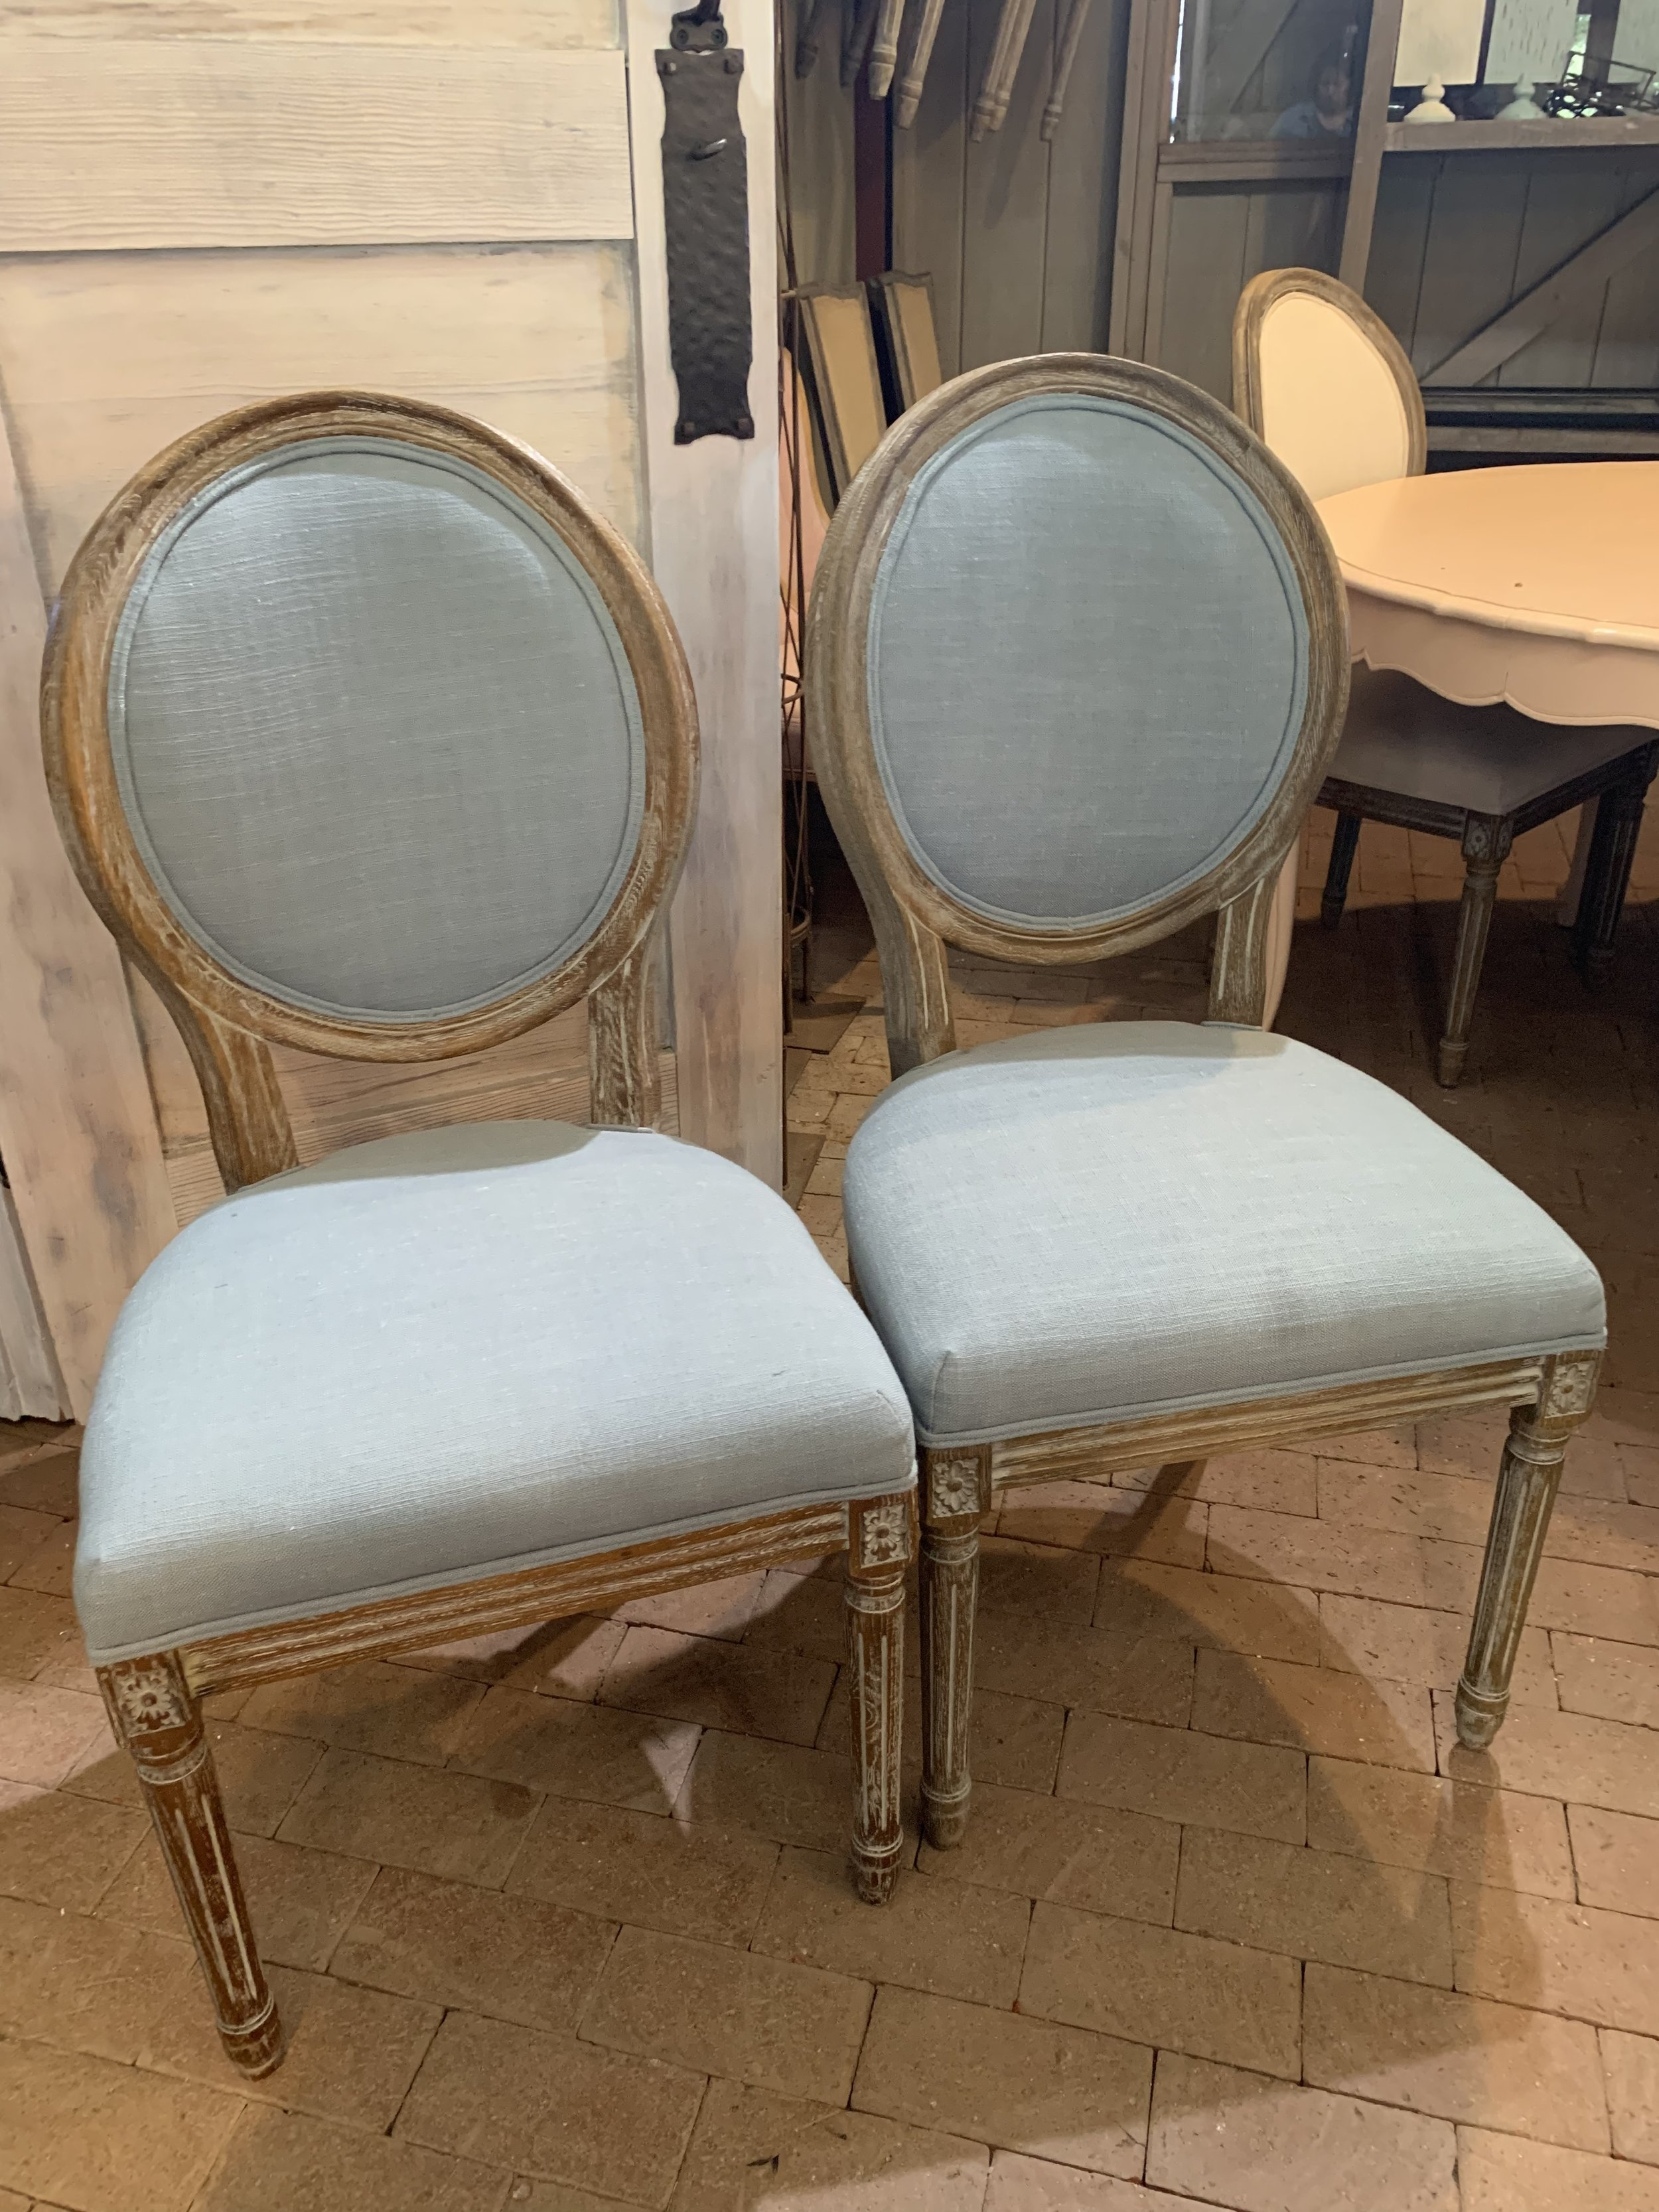 LIGHT BLUE BRIDE AND GROOM CHAIRS - $70